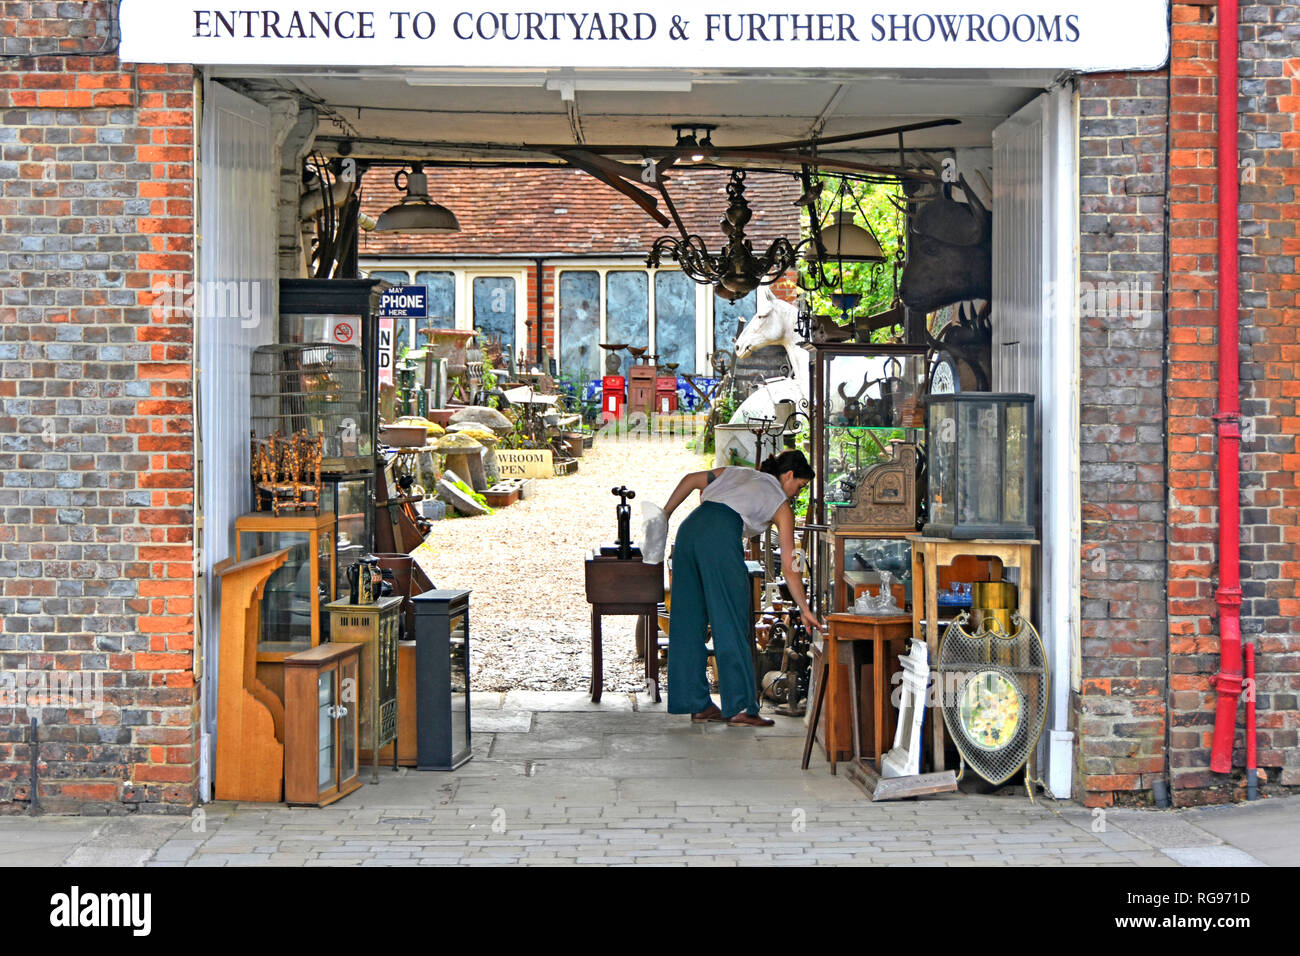 Woman arranging display of antiques  collectables & bric a brac in entrance to dealer courtyard & showroom shop at Hungerford Berkshire England UK - Stock Image